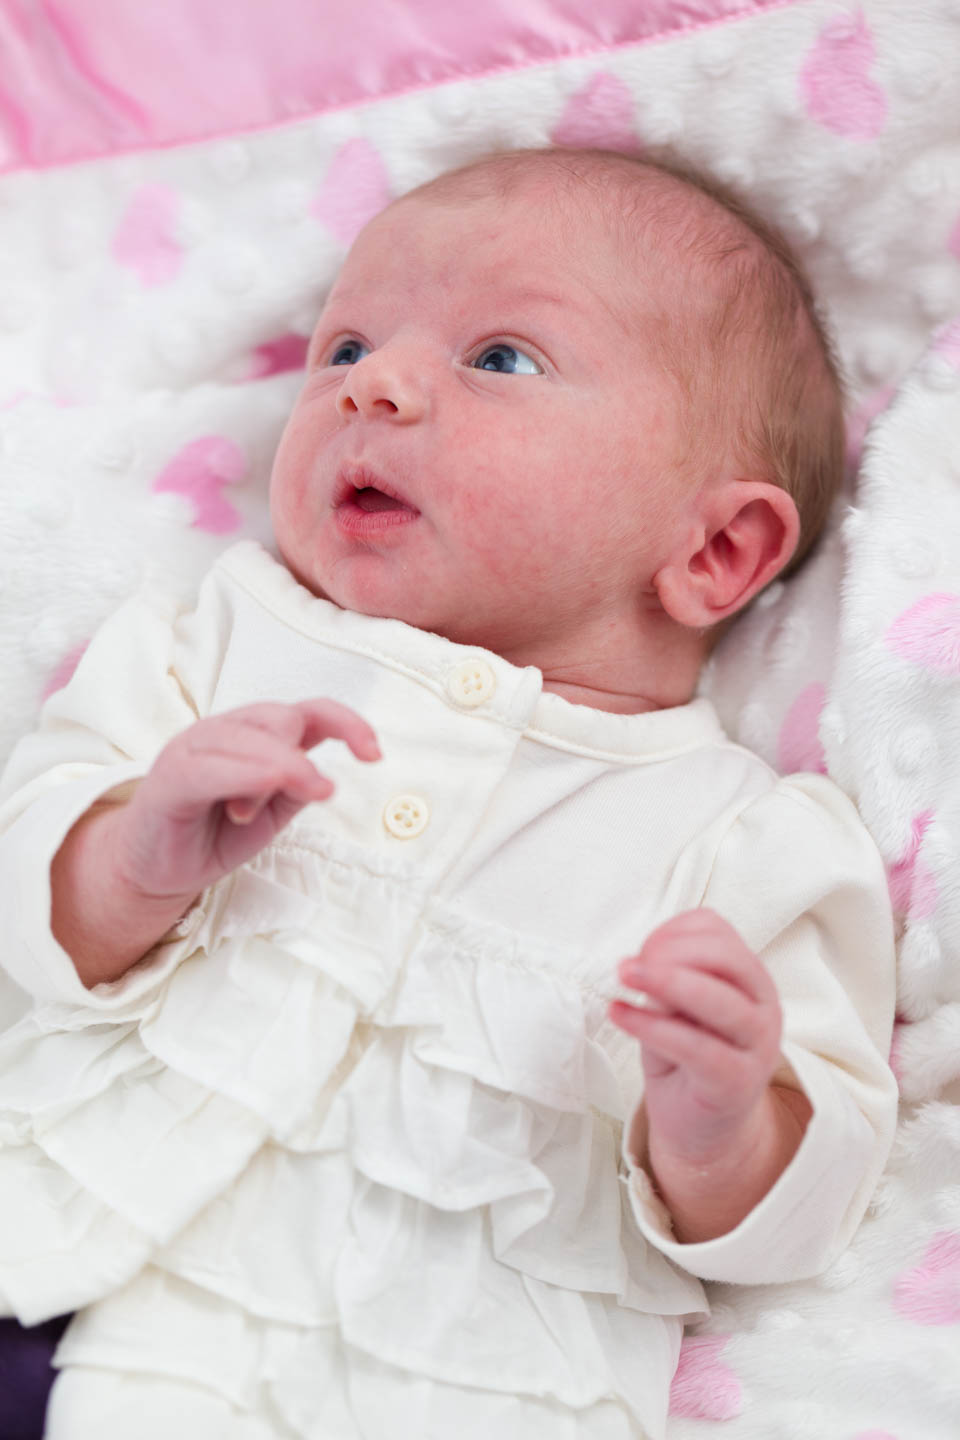 Baby Britain was a champ for her baby photo shoot